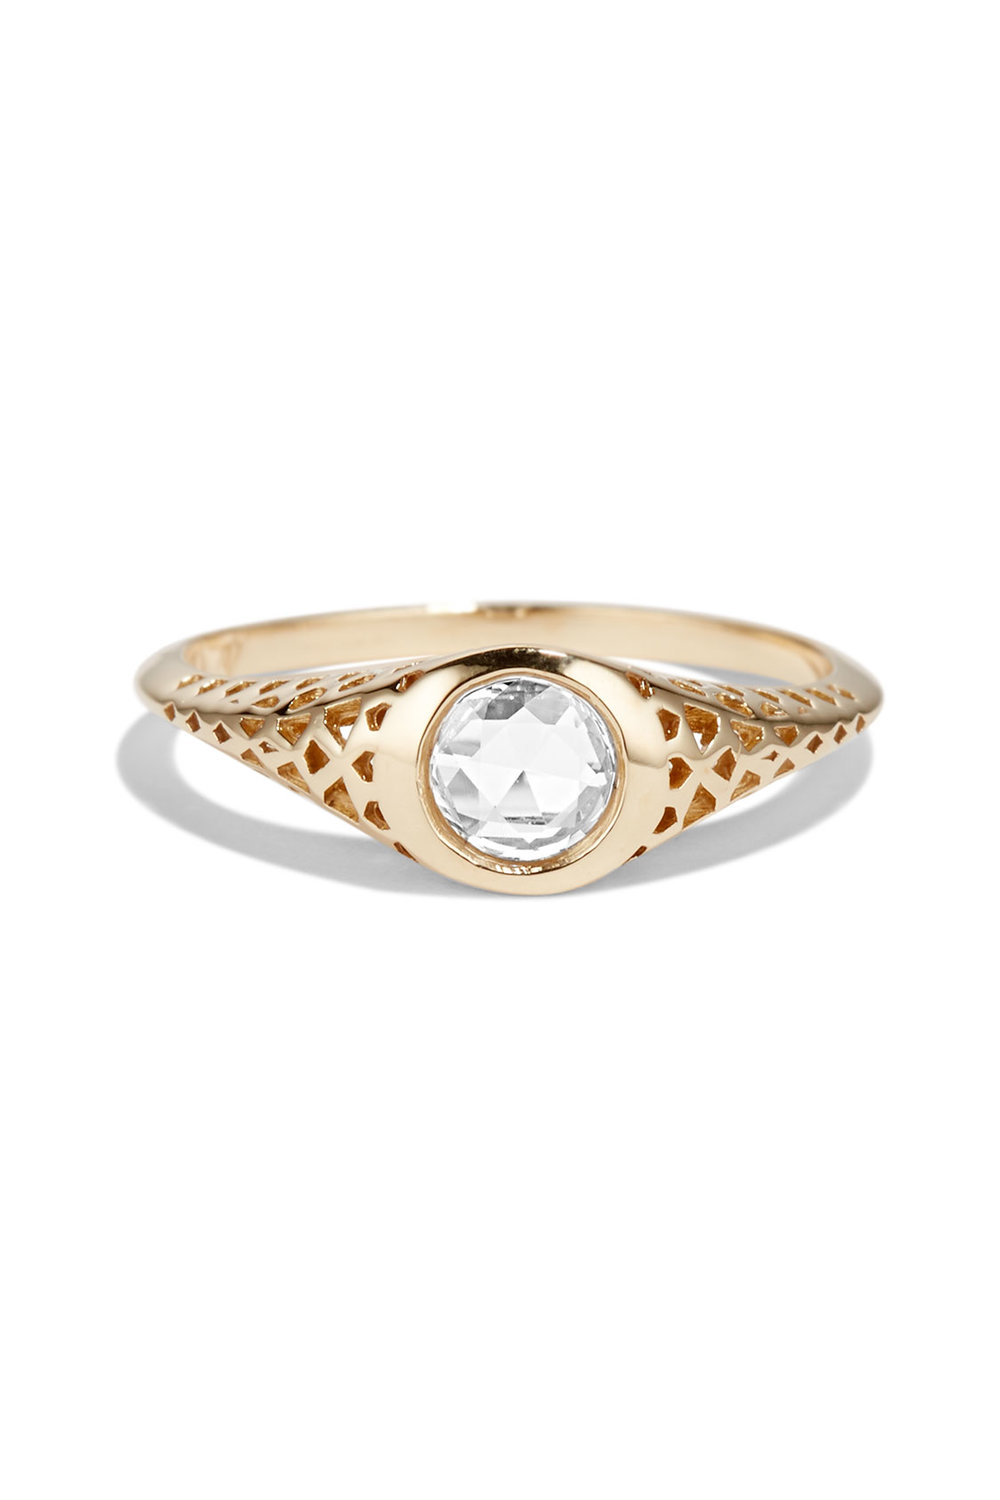 ROSE_CUT_ROUND_FILIGREE_RING_Bario_Neal